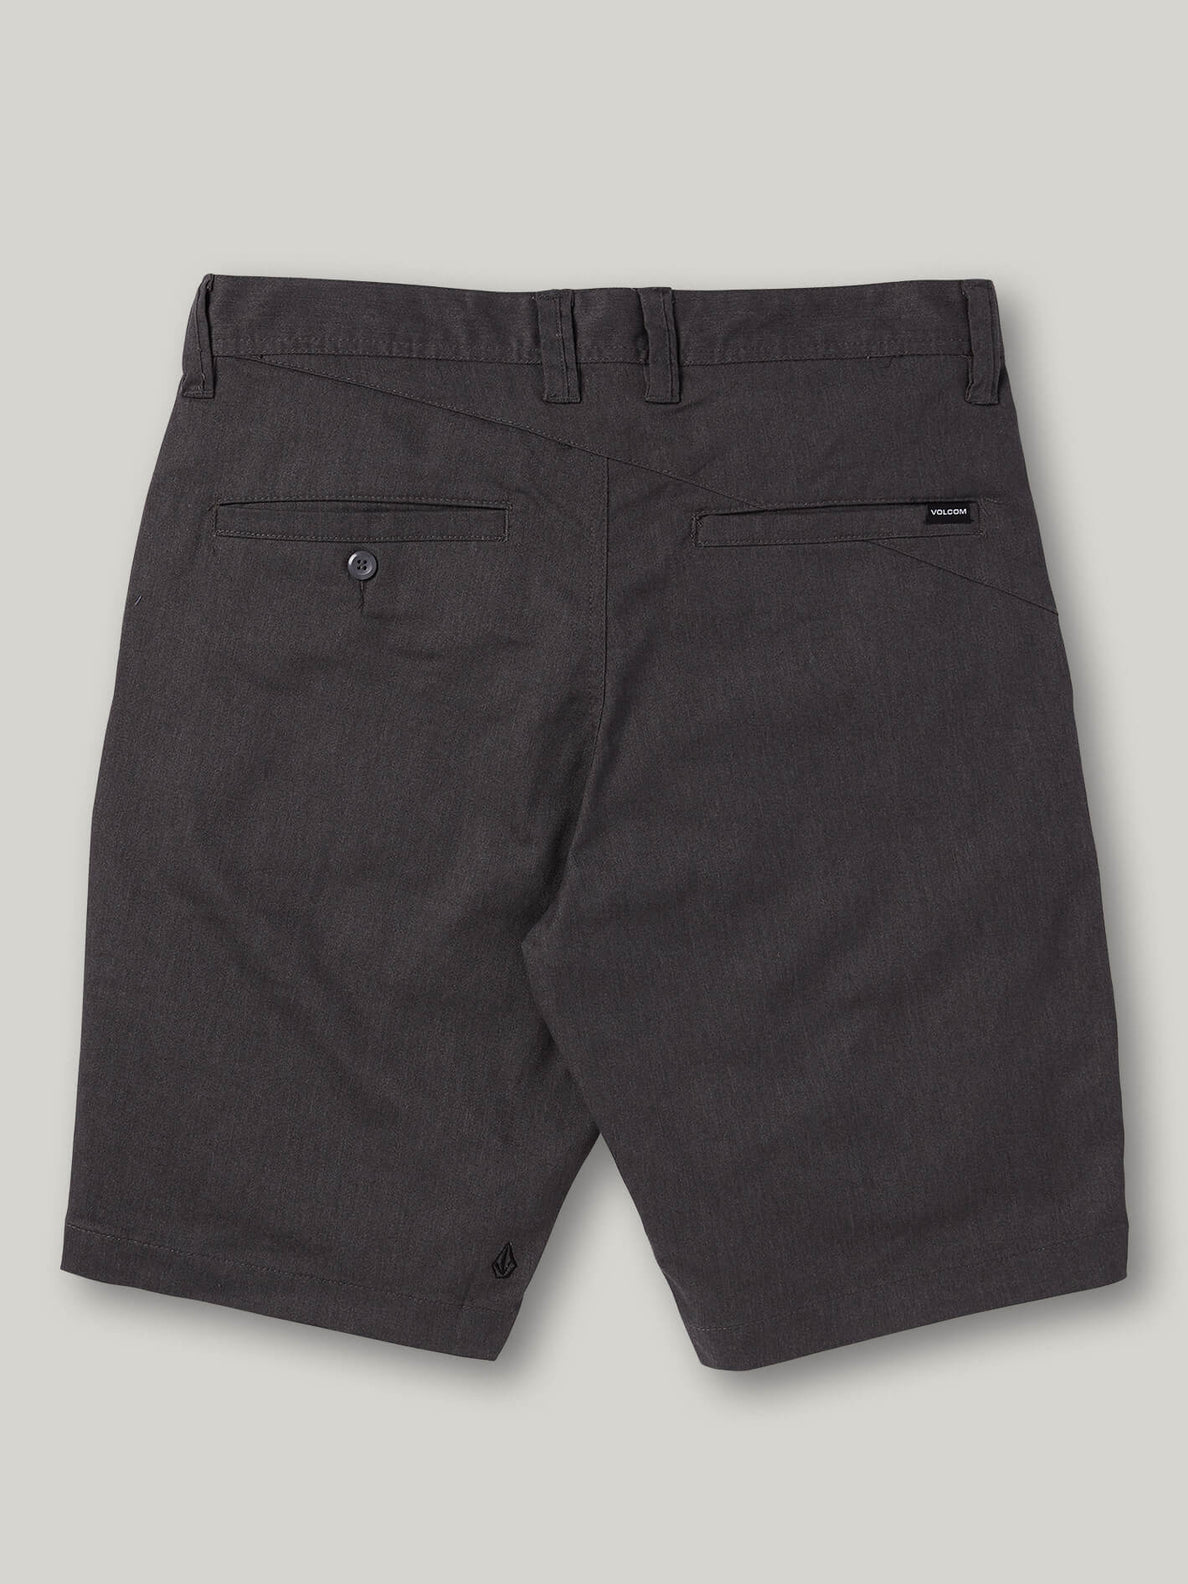 FRCKN MDN STRCH SHT - CHARCOAL HEATHER (A0911601_CHHK) [B]